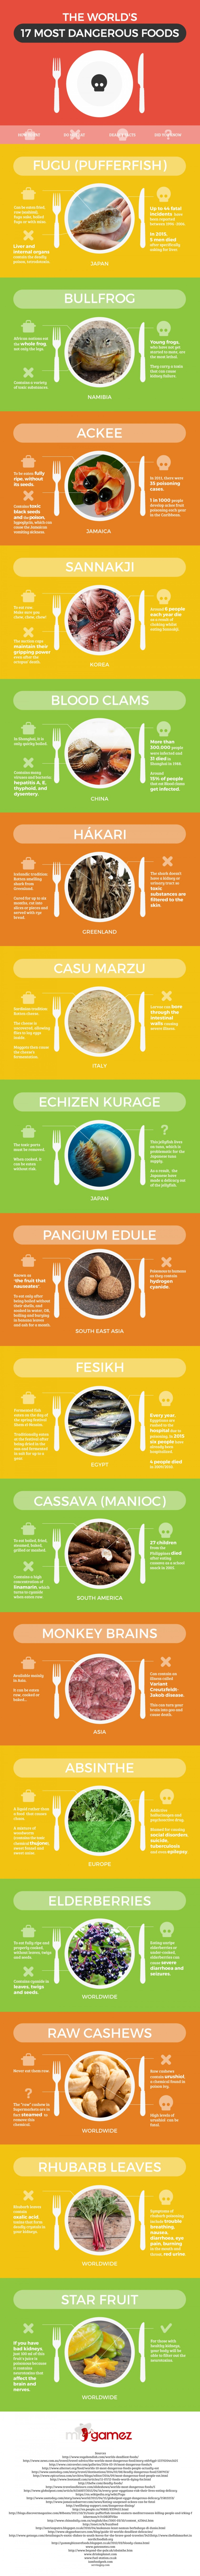 Infographic_The-Worlds-17-Most_Dangerous_Foods